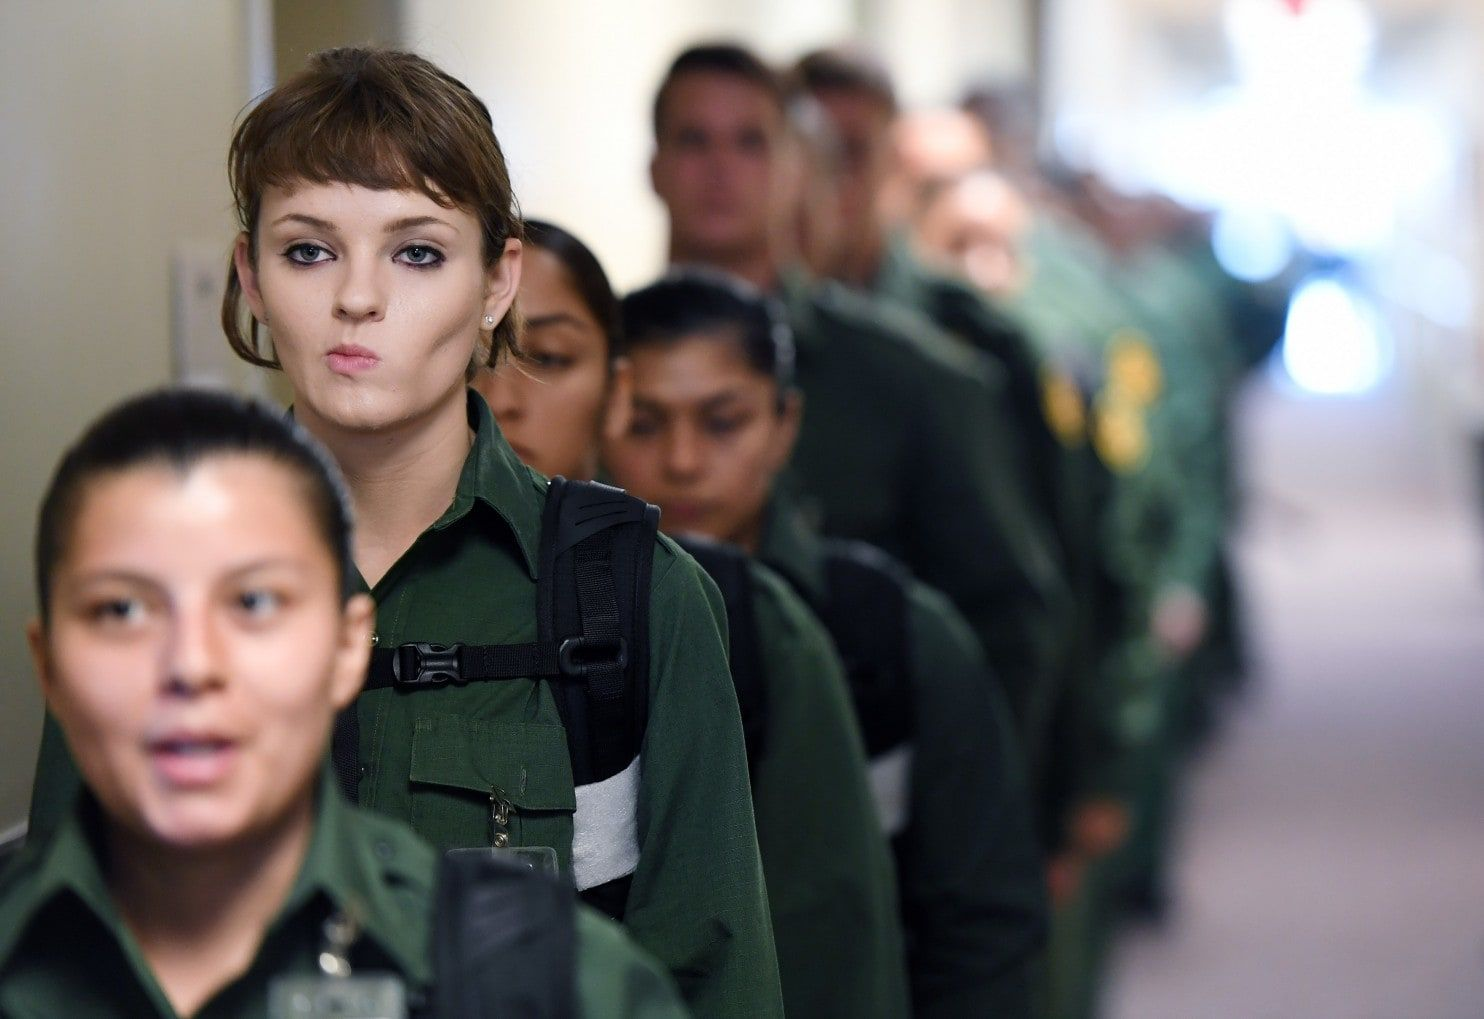 Border Patrol trainees prepare to enter one of the country